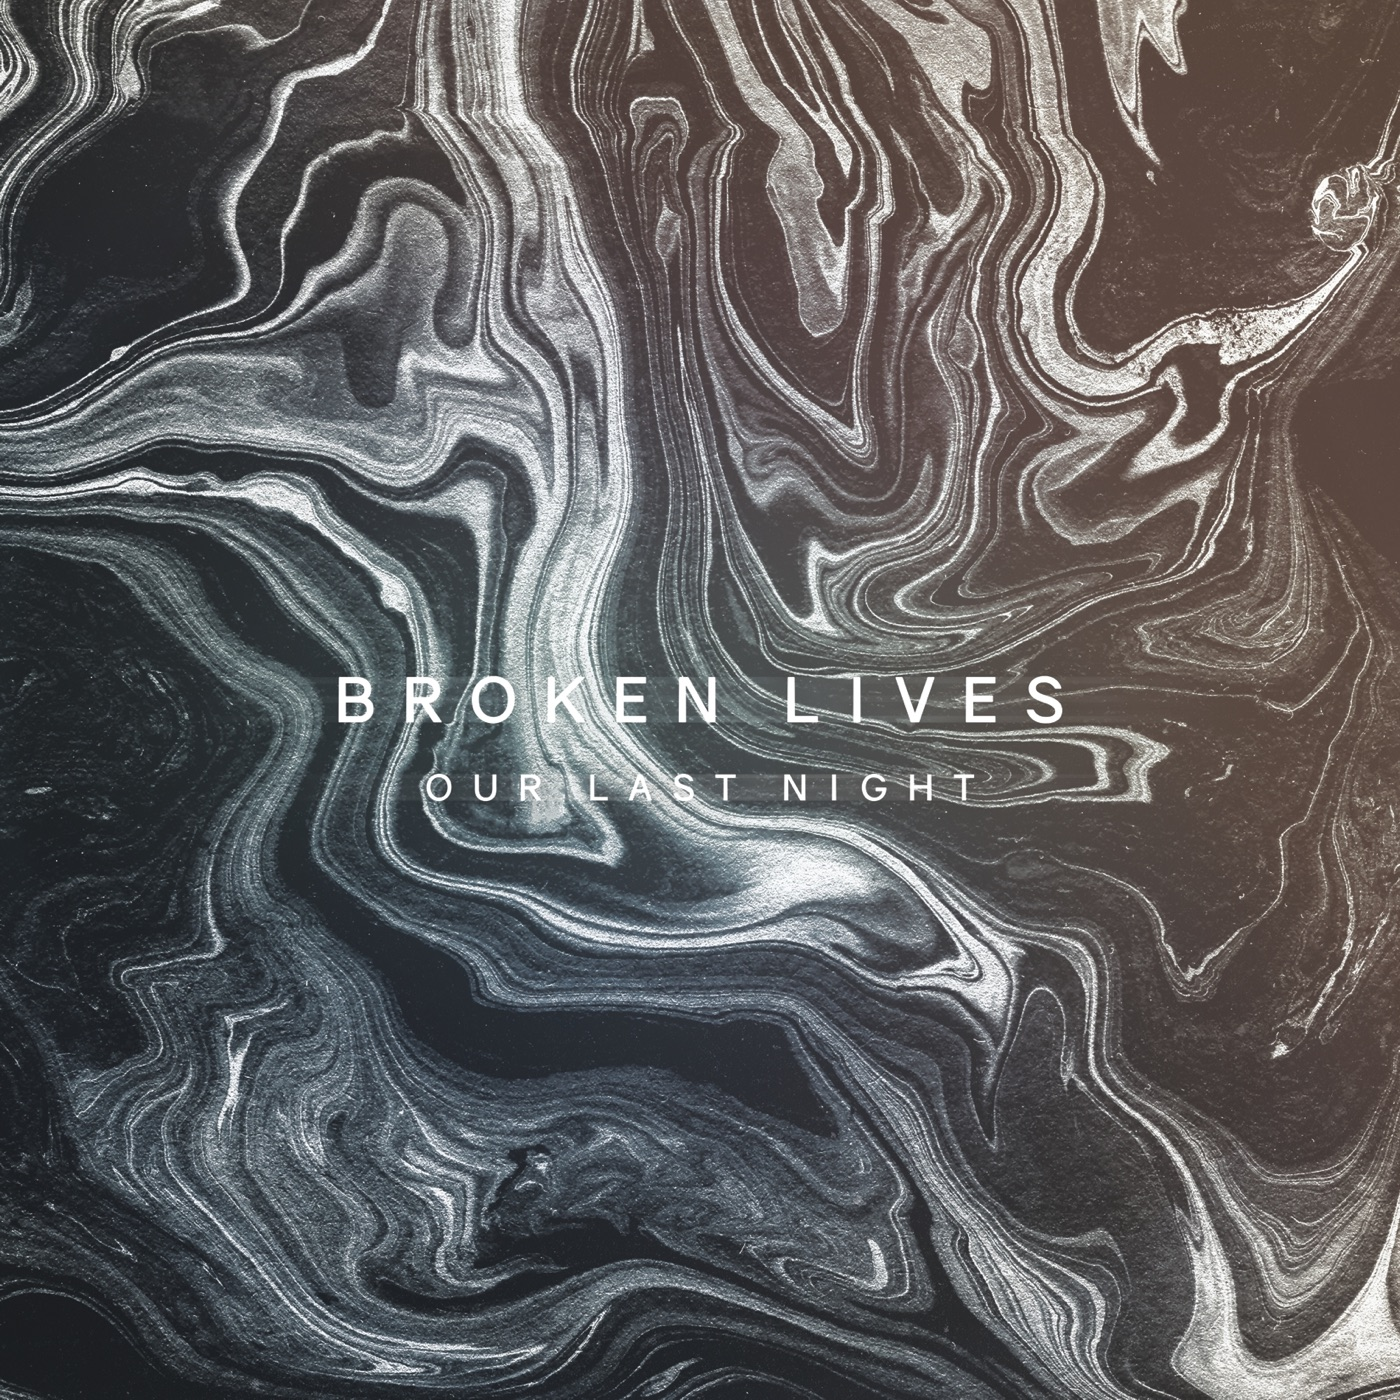 Our Last Night - Broken Lives [single] (2017)